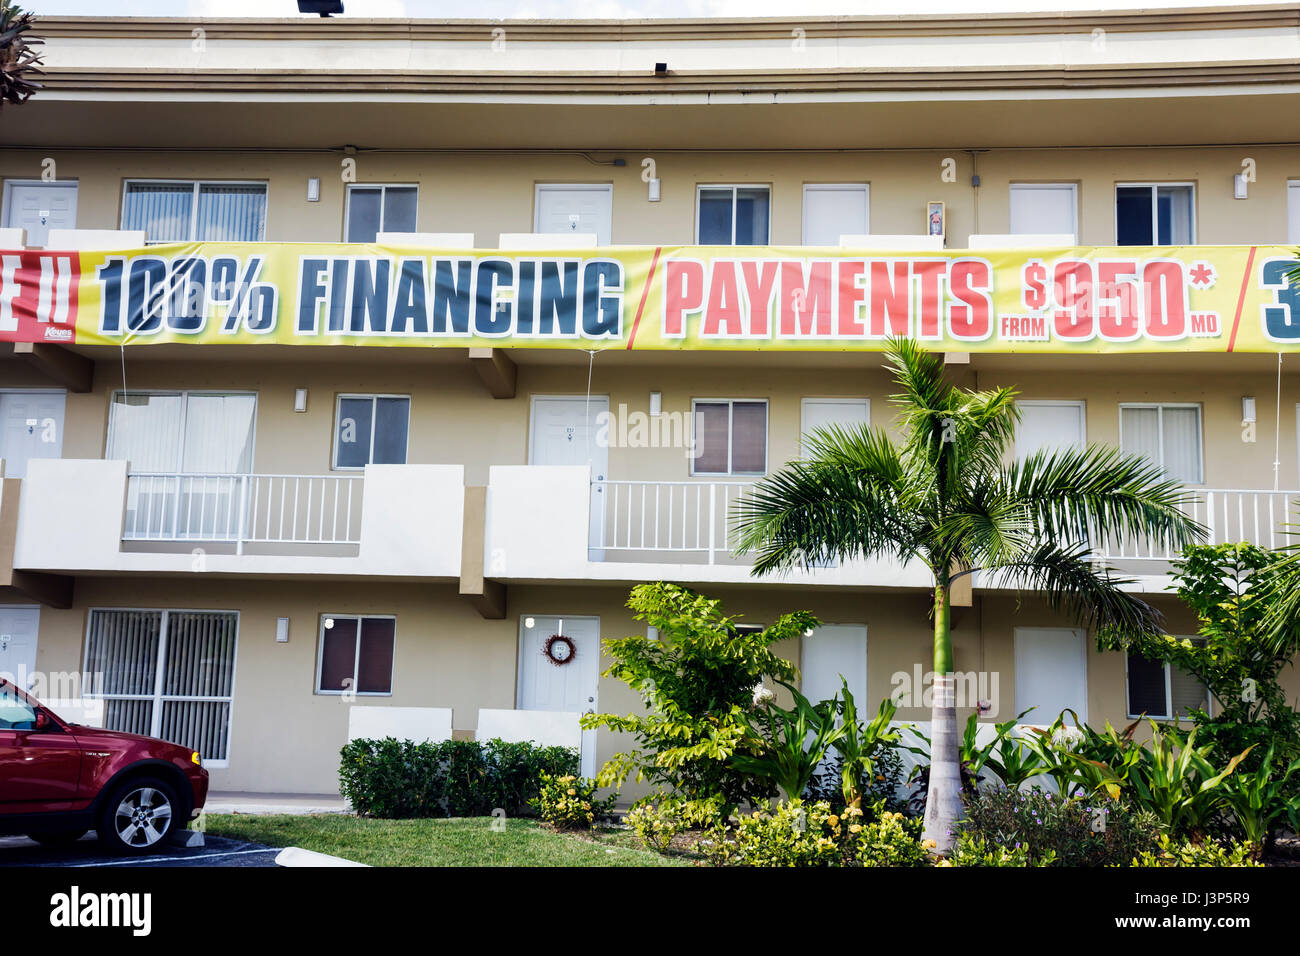 Miami Florida building apartments condominium real estate housing 100% financing mortgage banner sale sell incentive Stock Photo